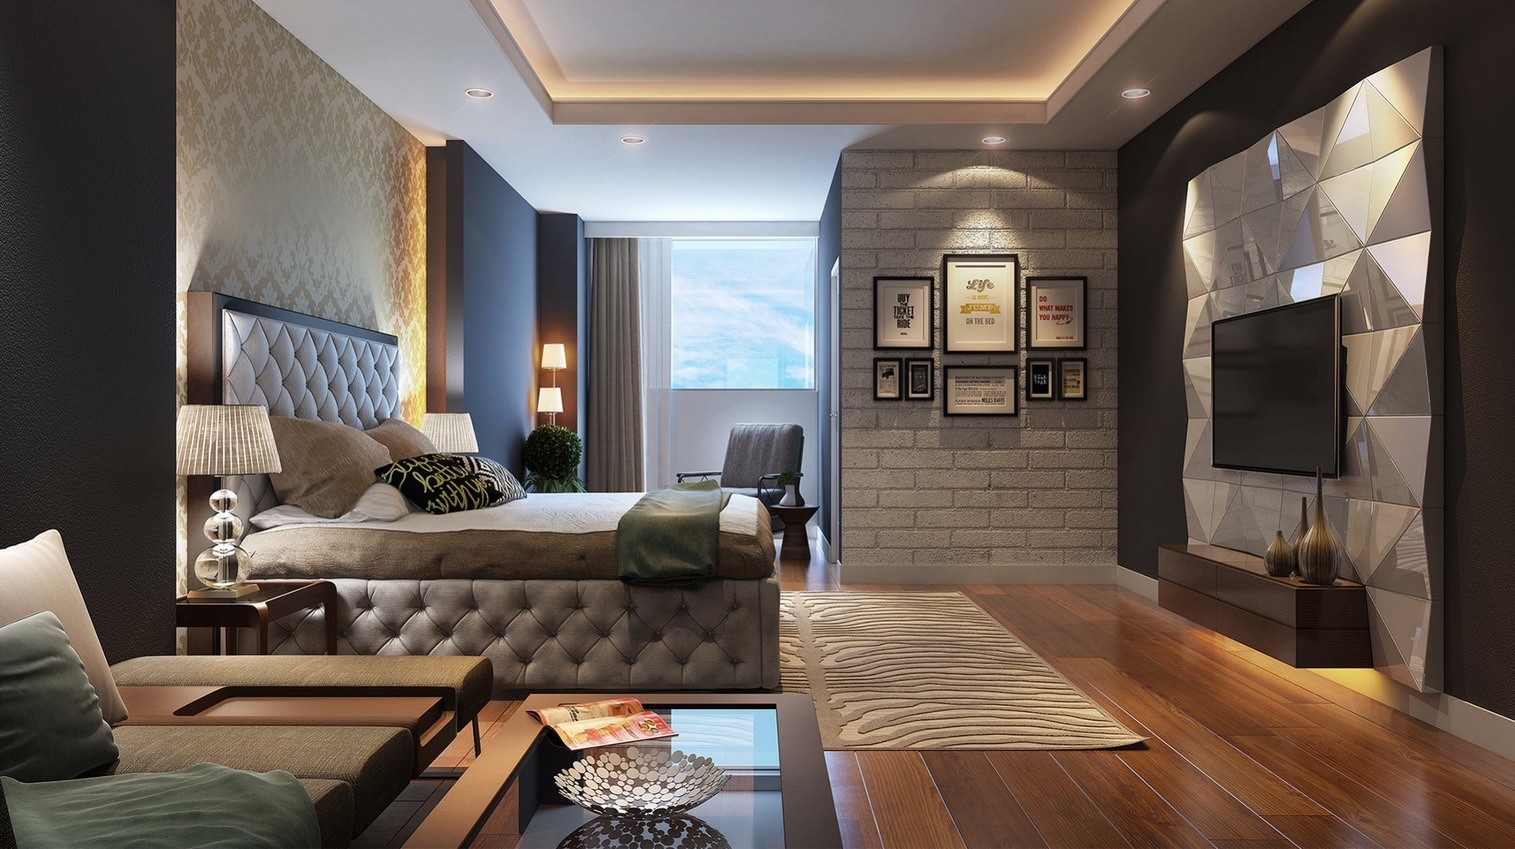 21 Cool Bedrooms for Clean and Simple Design Inspiration on Cool Bedroom Ideas For Small Rooms  id=81109